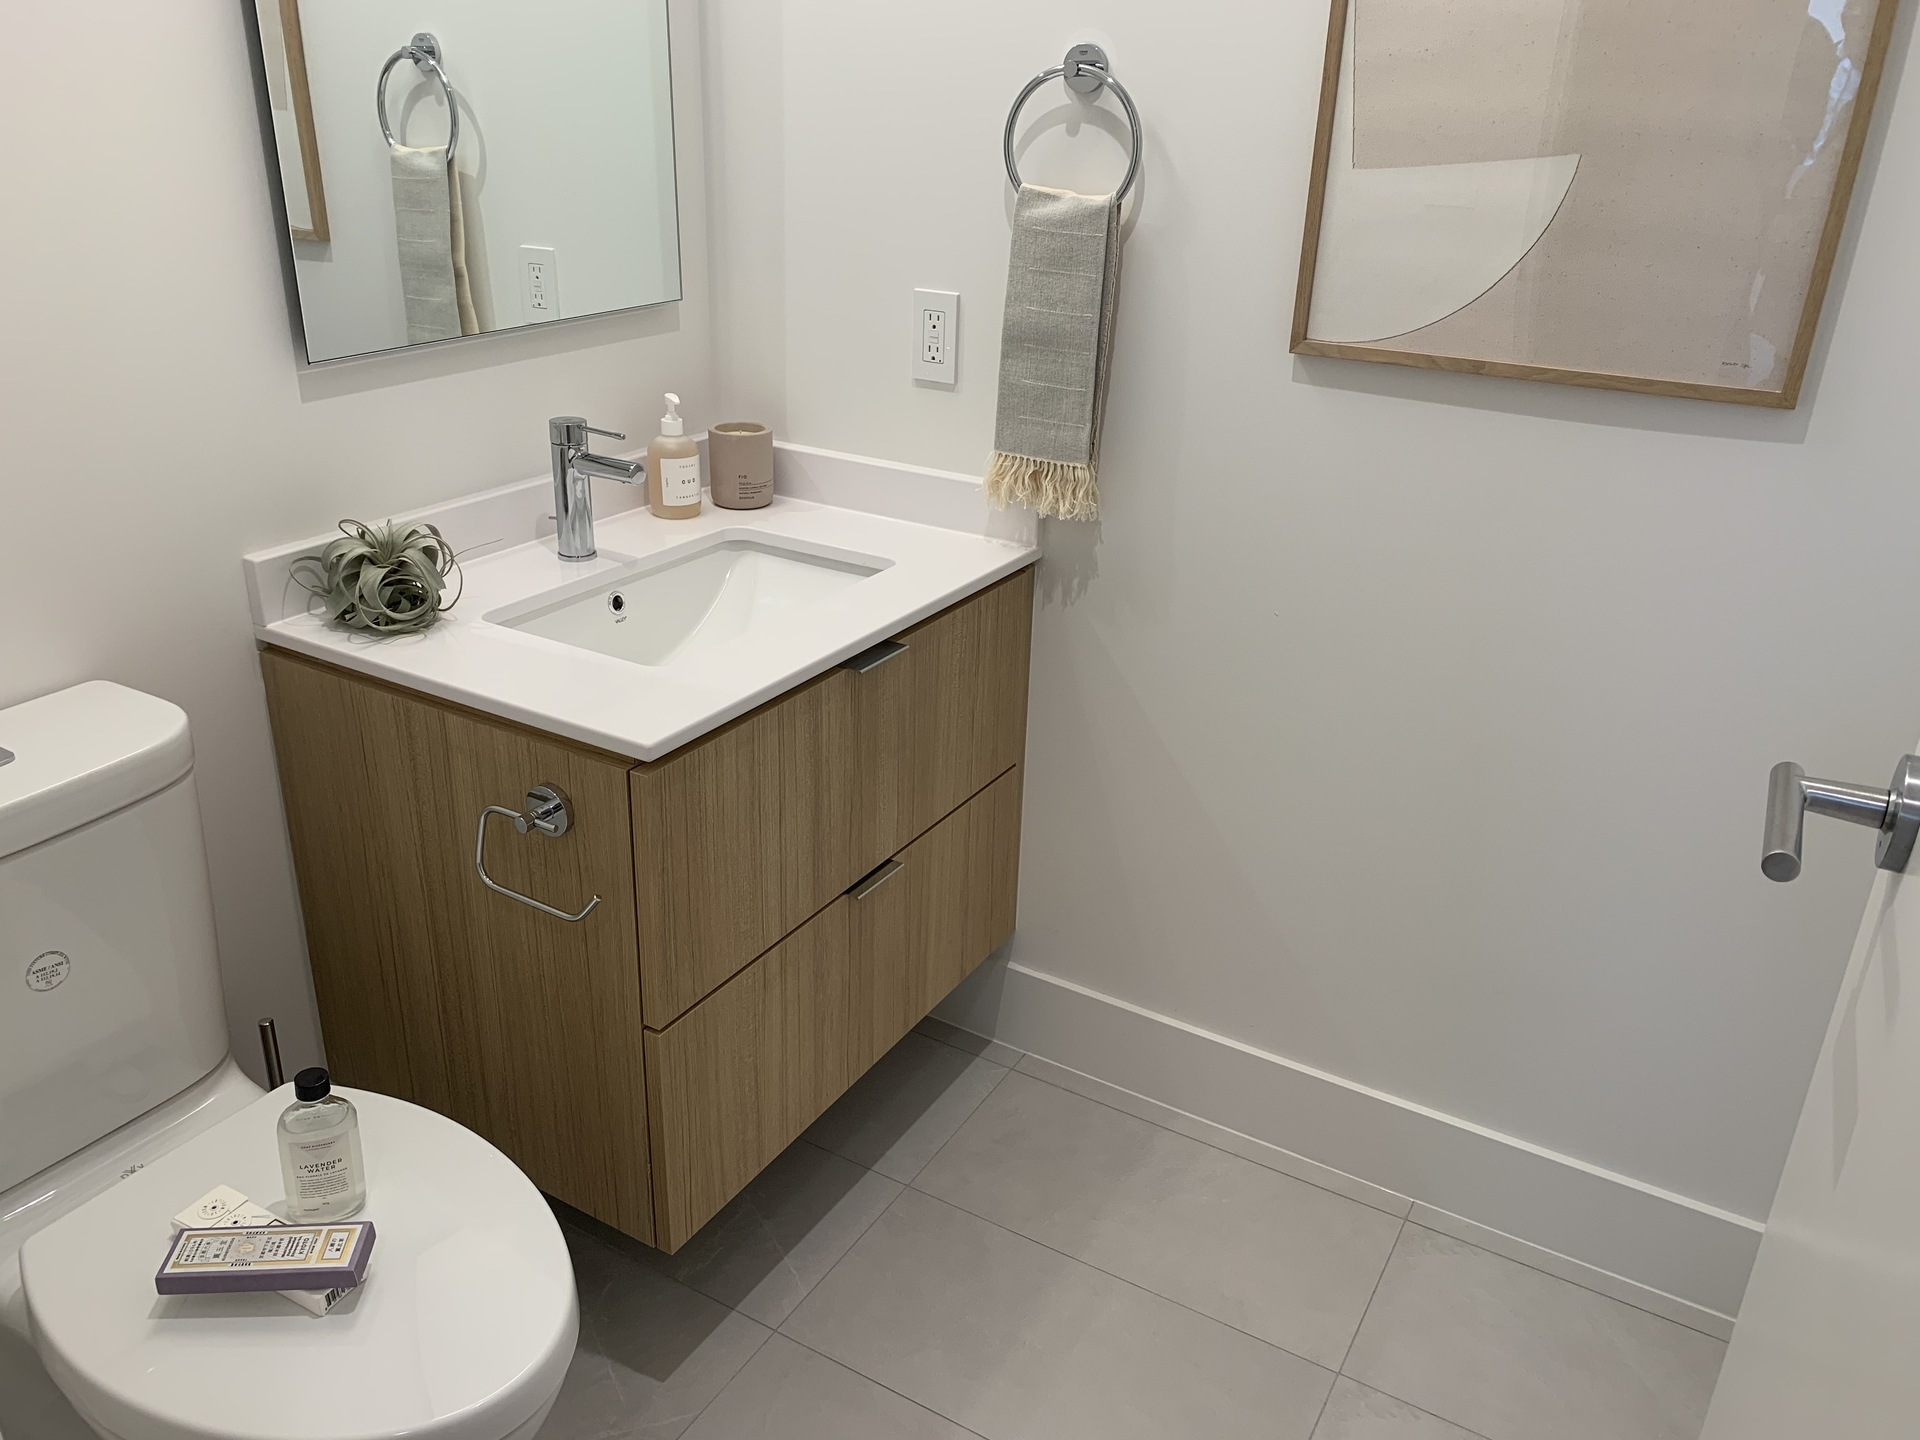 Kin - powder room on living level of City Home at The Kin Collection (7470 Buller Avenue, Metrotown, Burnaby South)